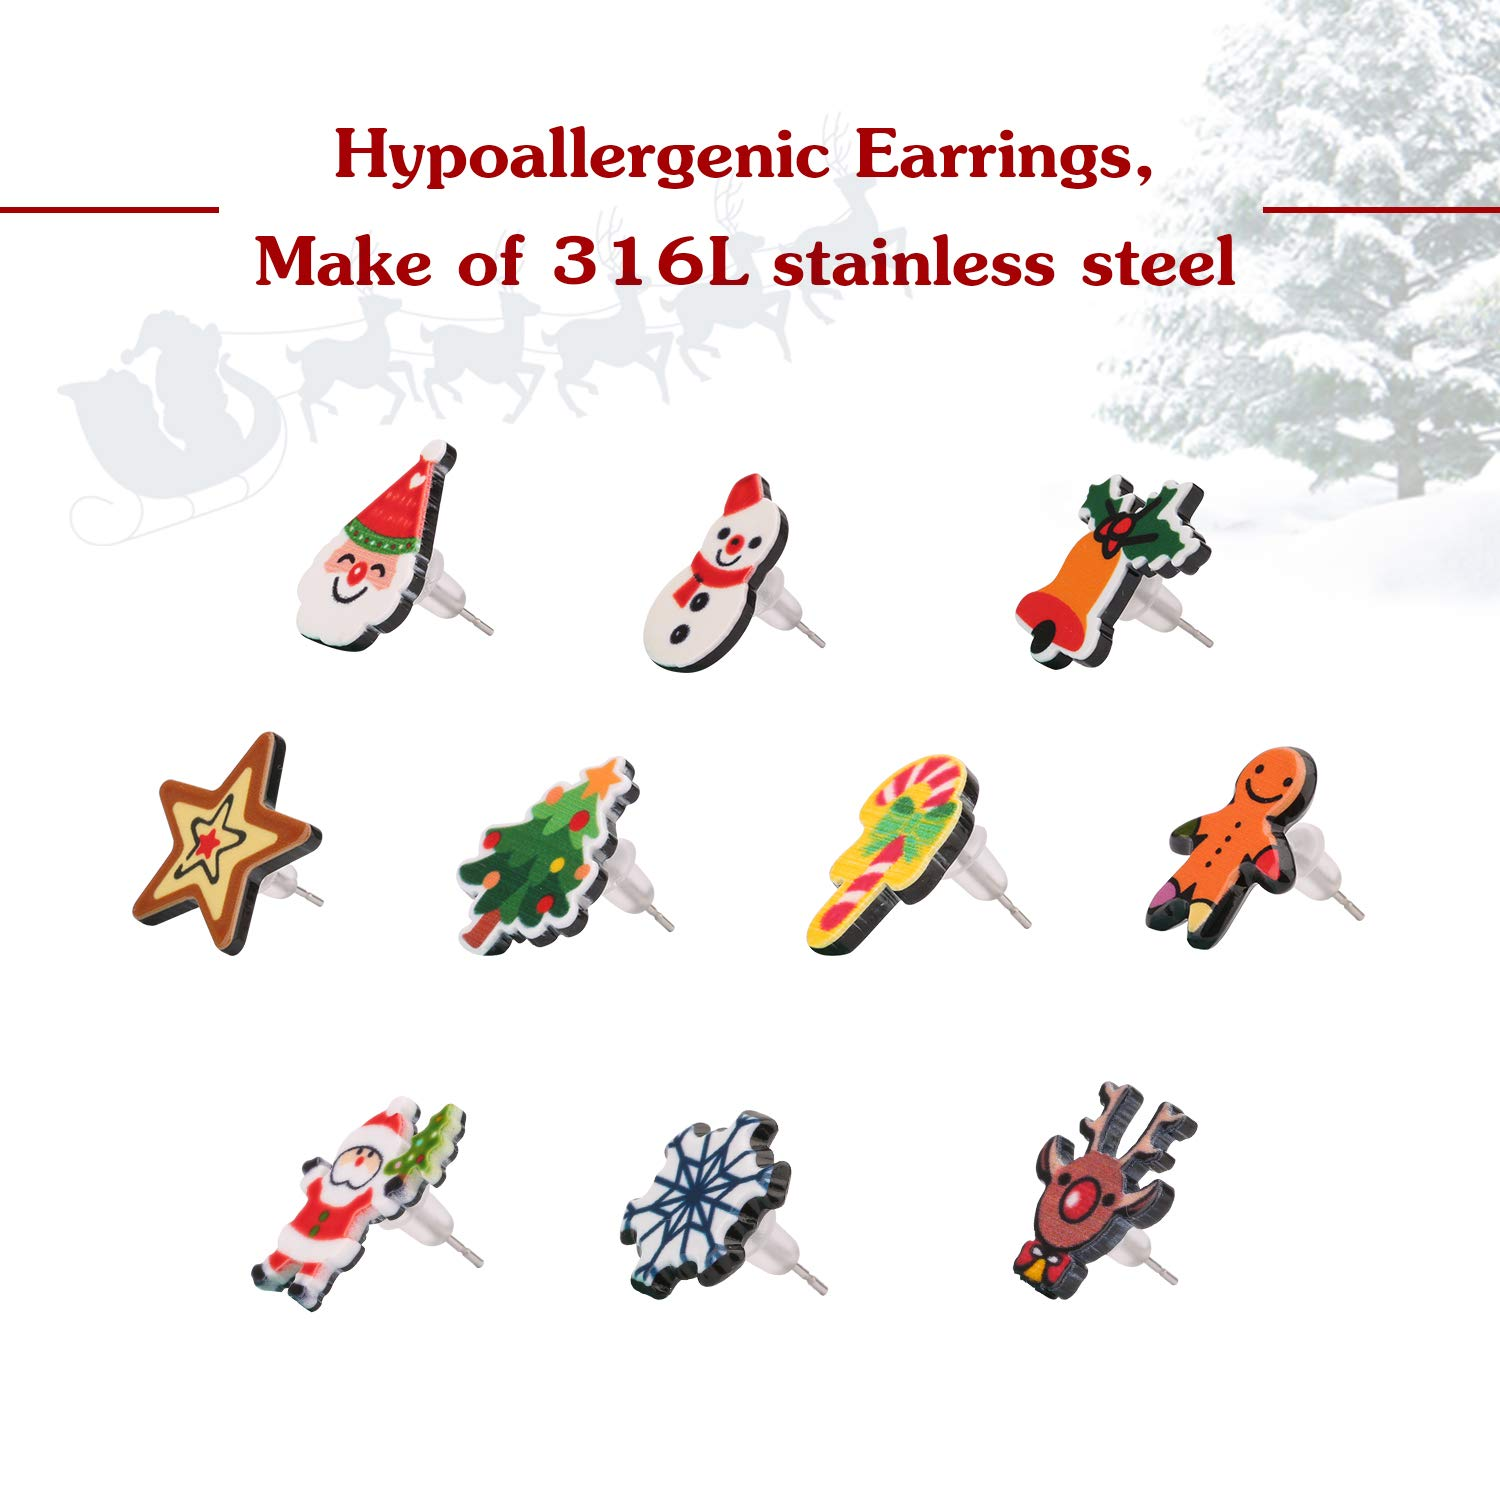 UHIBROS Christmas Stud Earrings 316L Stainless Steel Jewelry Hypoallergenic Cute Earring Set 10 Pairs (Multi-Color)